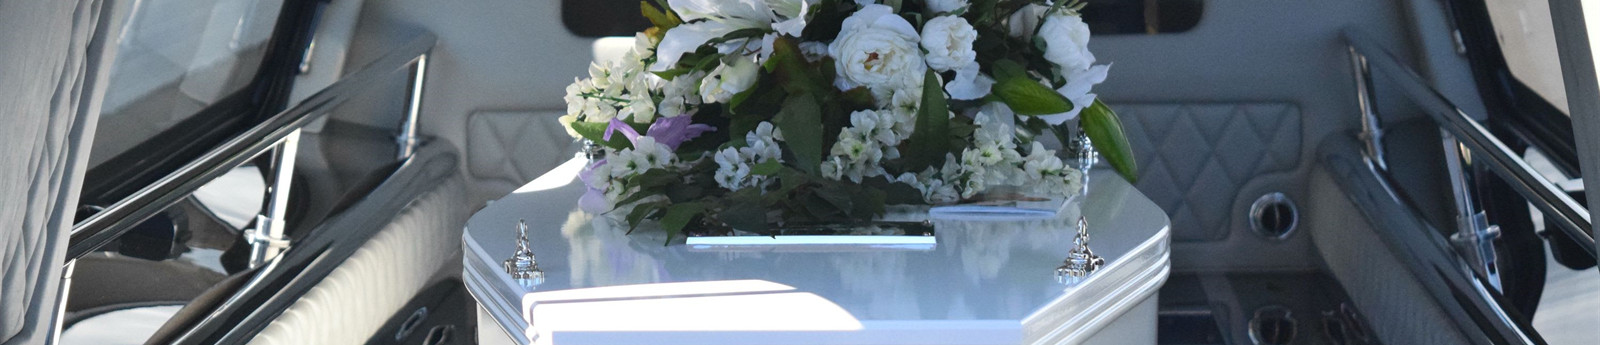 What We Do | Spilker Funeral Home